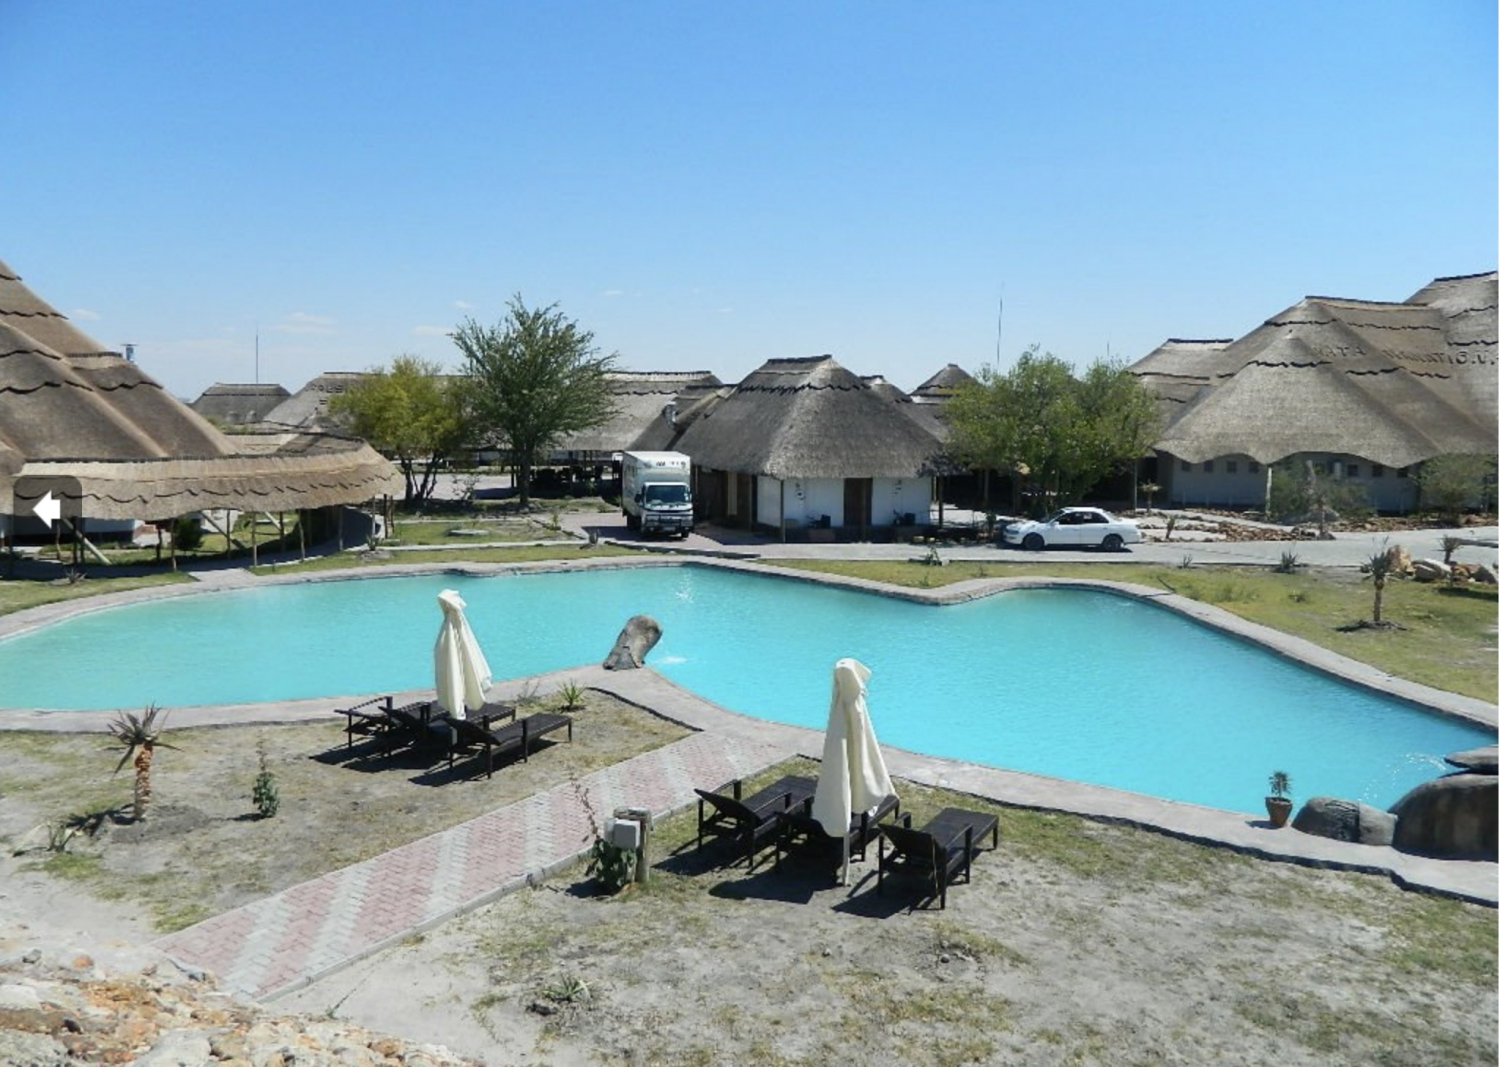 Pelican Lodge & Campsite